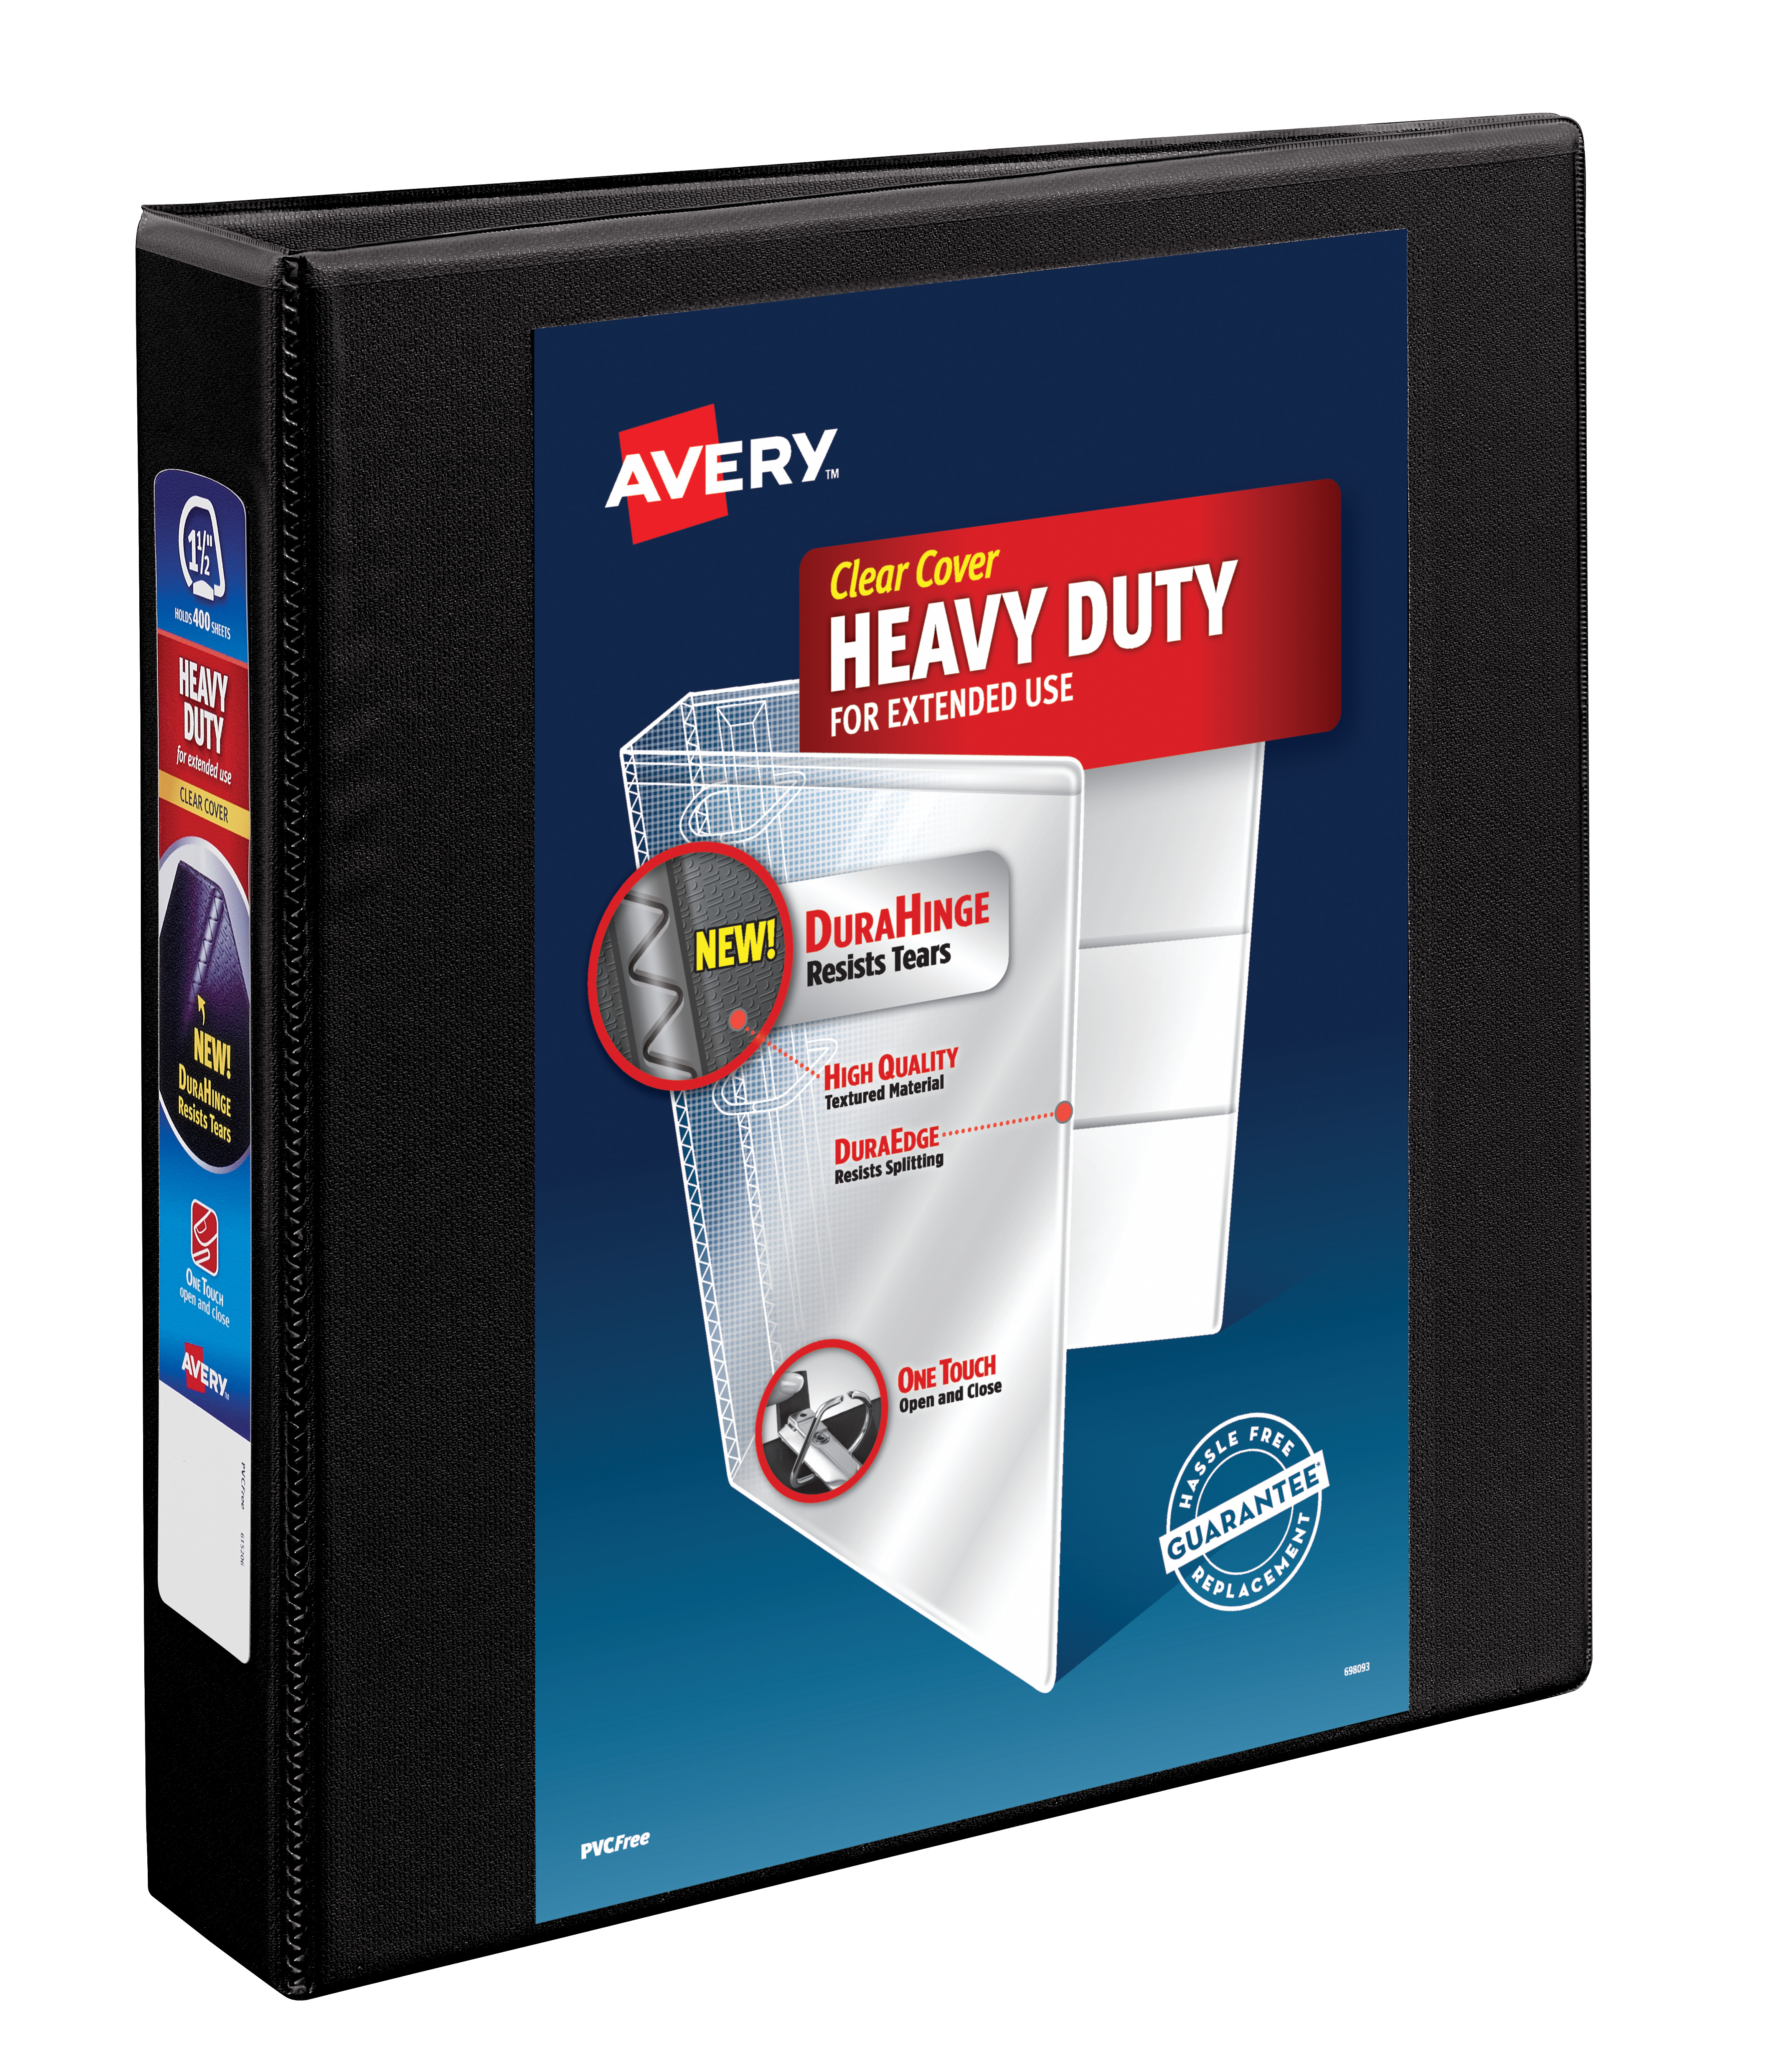 """Avery 1.5"""" Heavy Duty View Binder, One Touch EZD Ring, Black, 400 SHeets by Avery Products Corporation"""